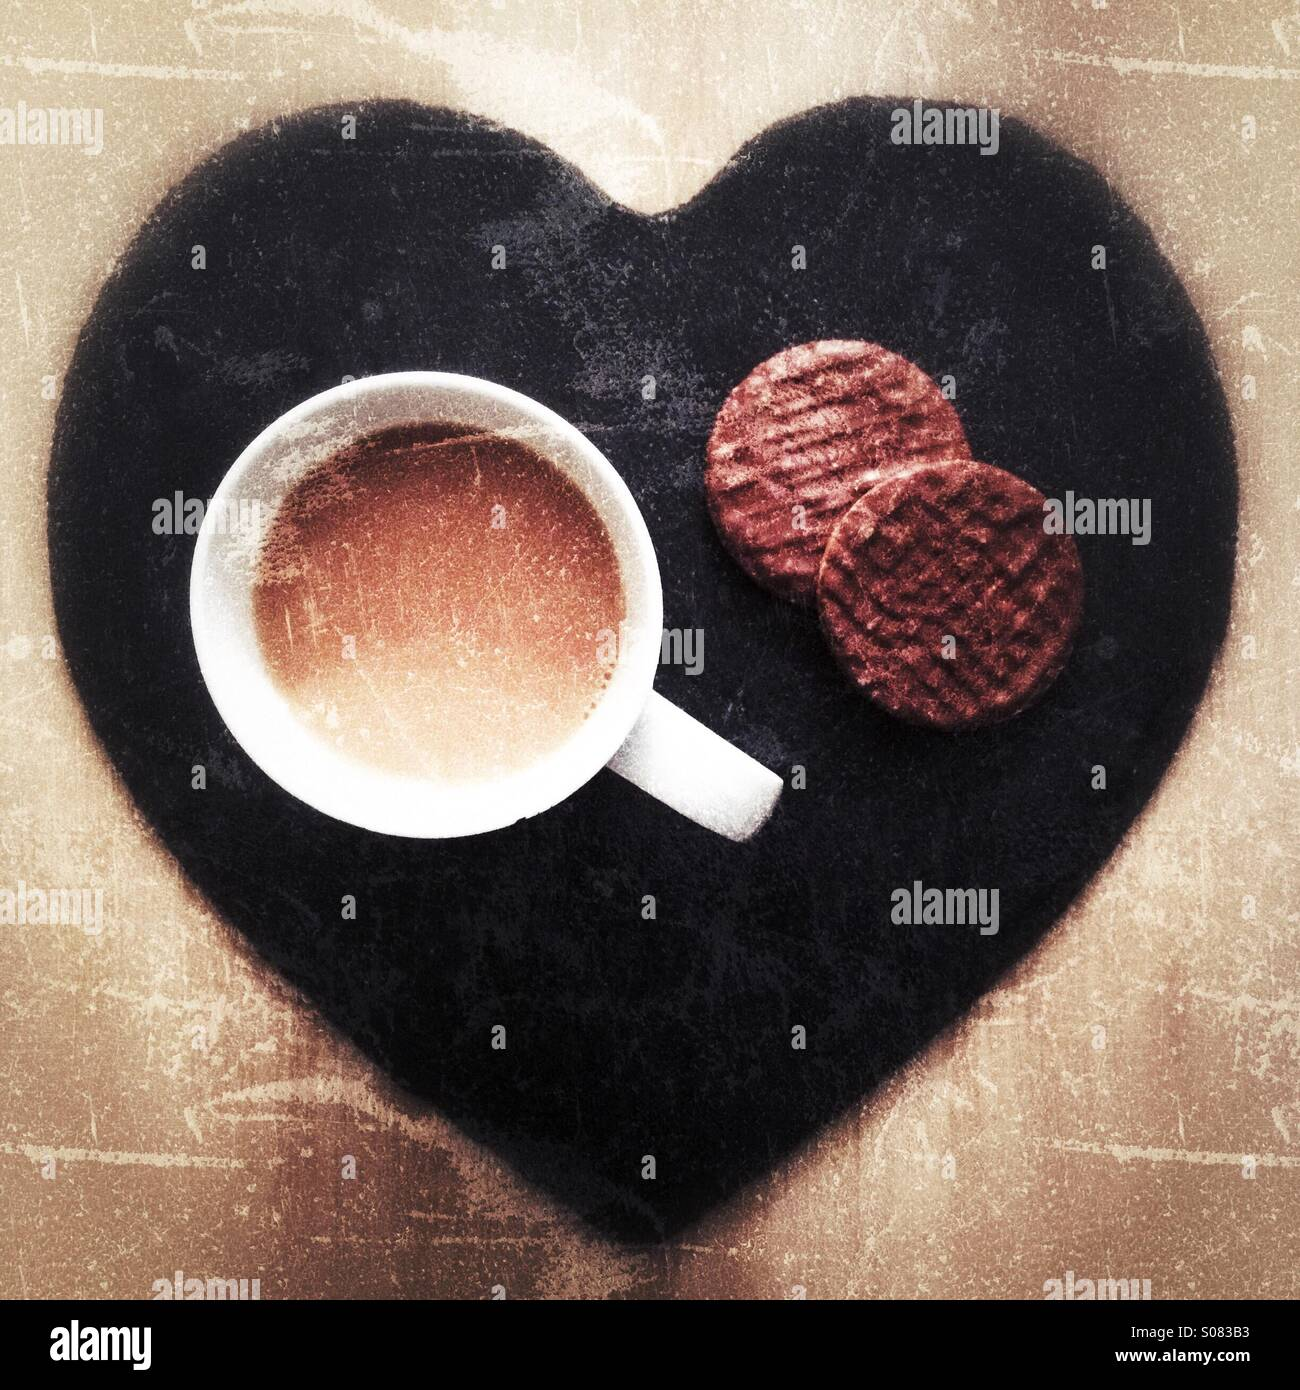 A Cup Of Tea Wit Two Chocolate Biscuits Sitting On A Slate Love